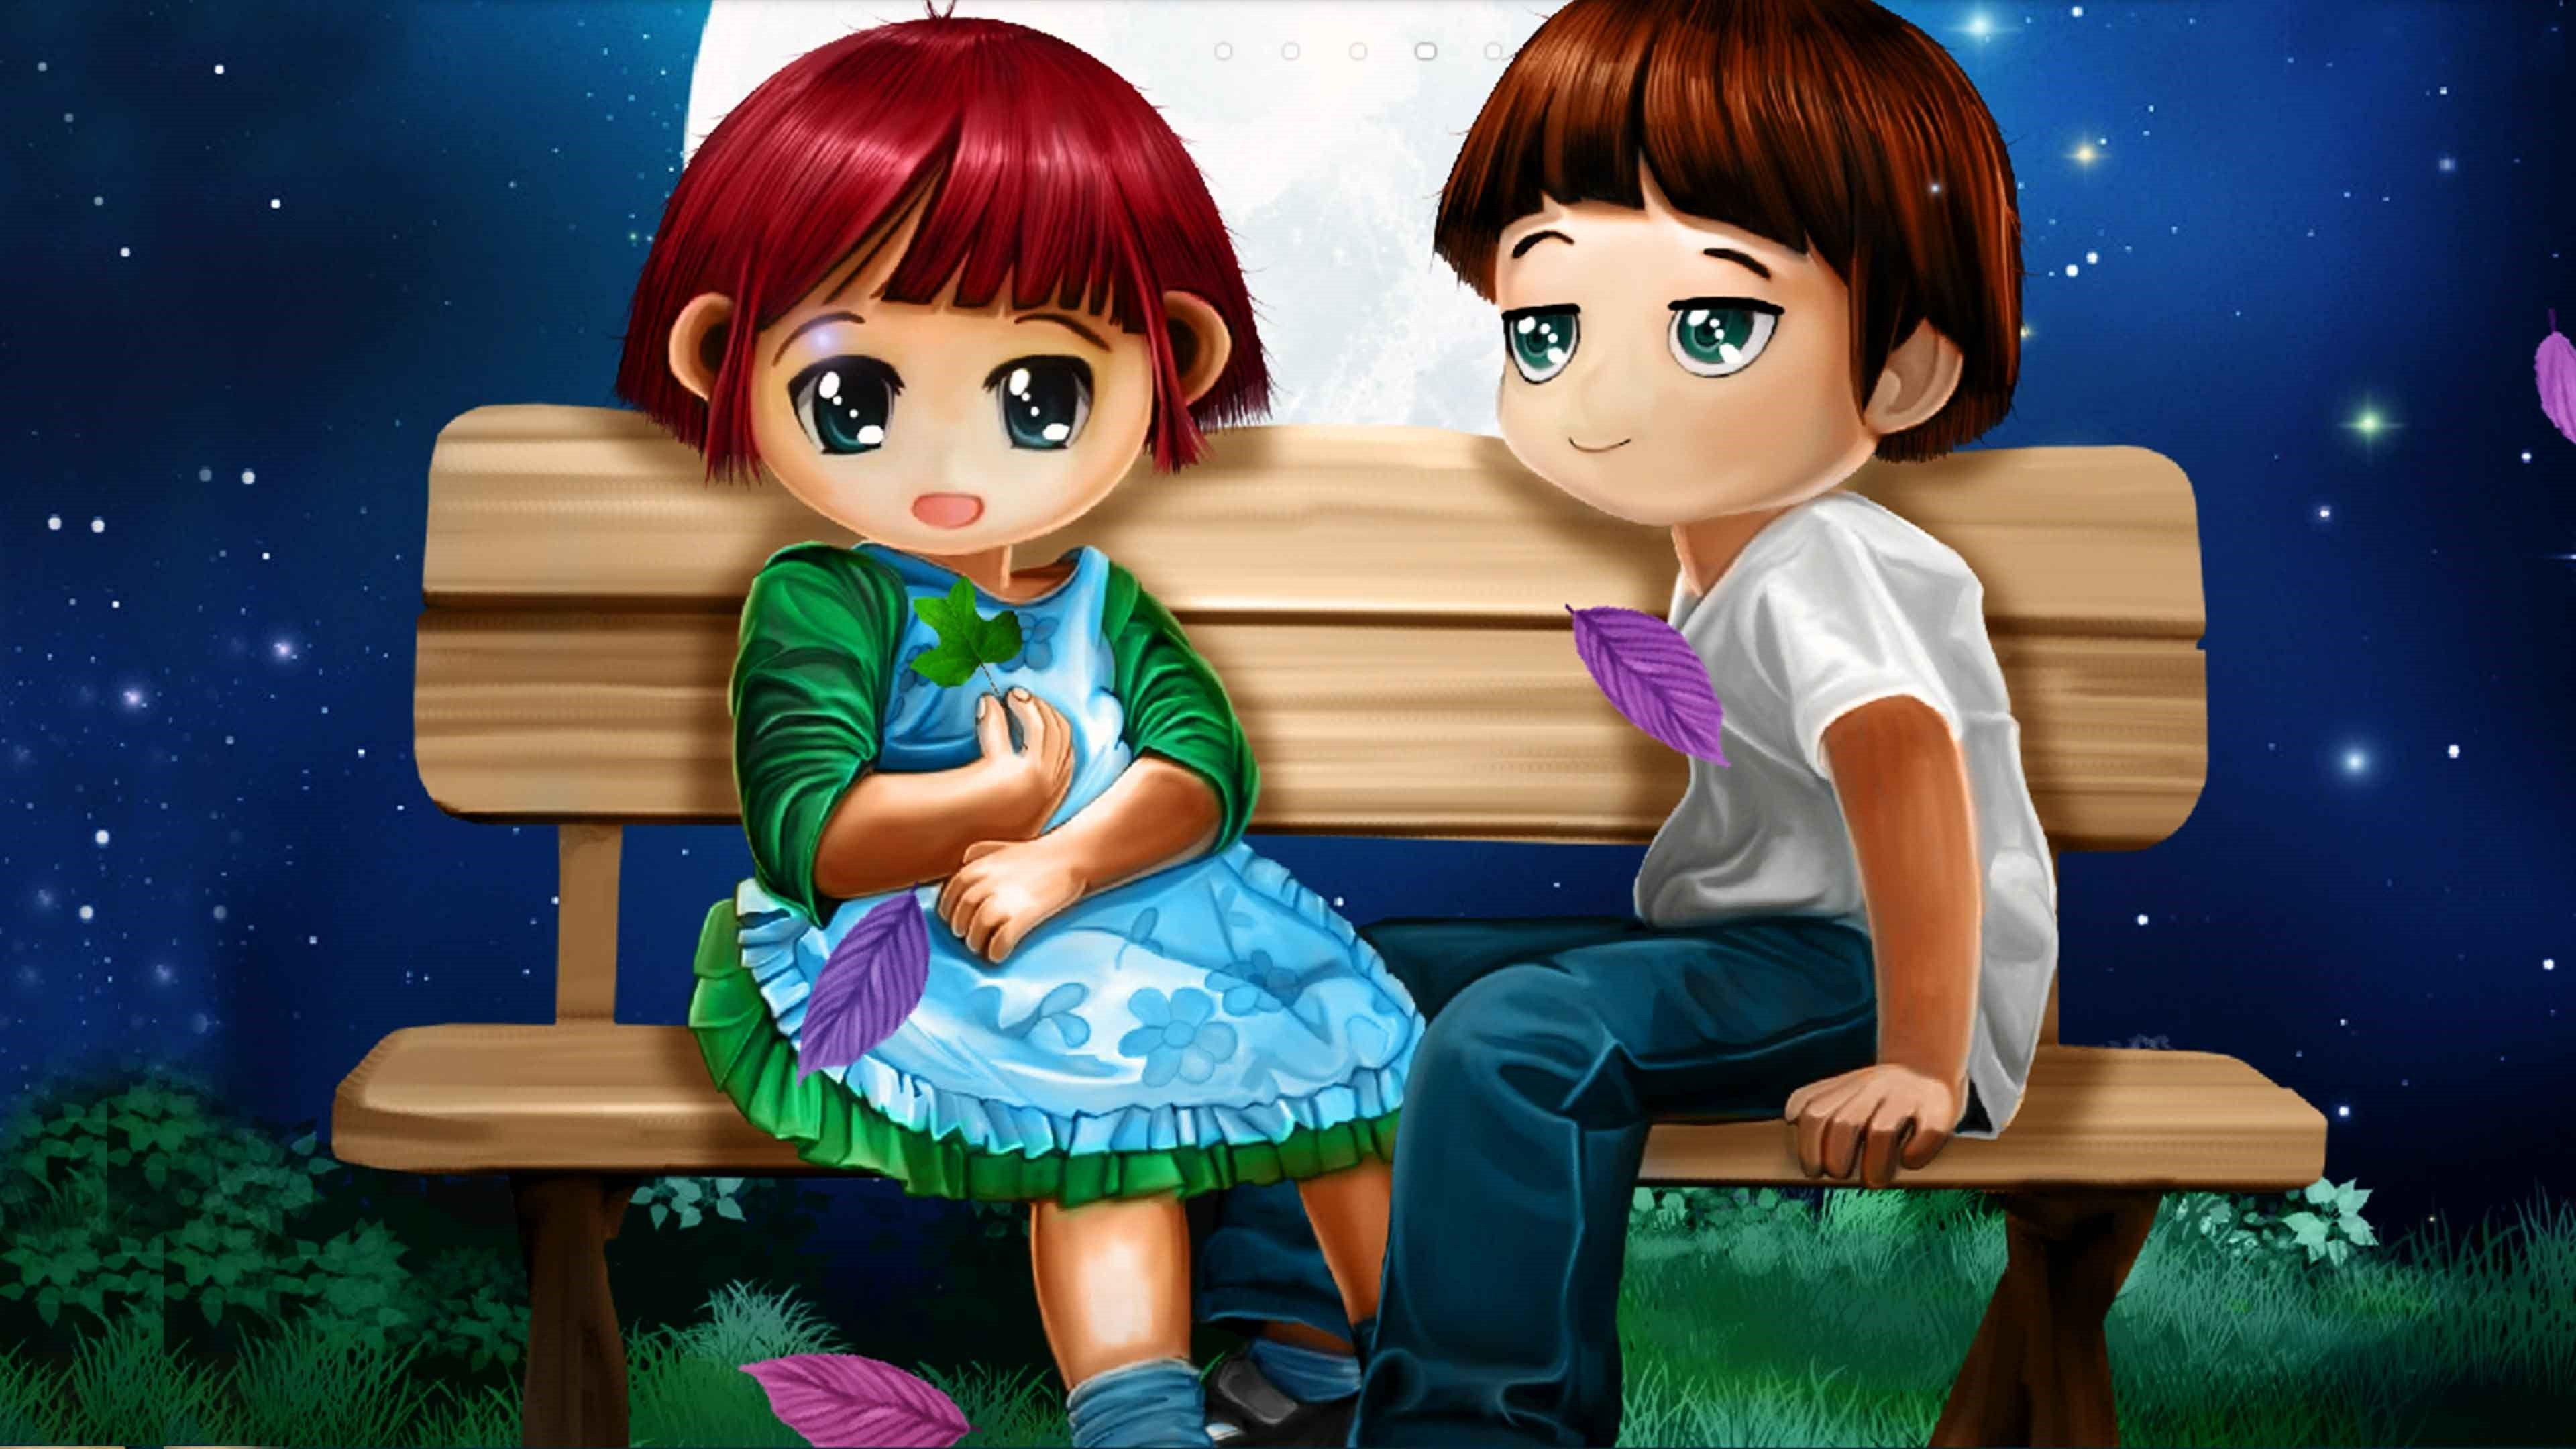 Awesome 3d Couple Image Hawai